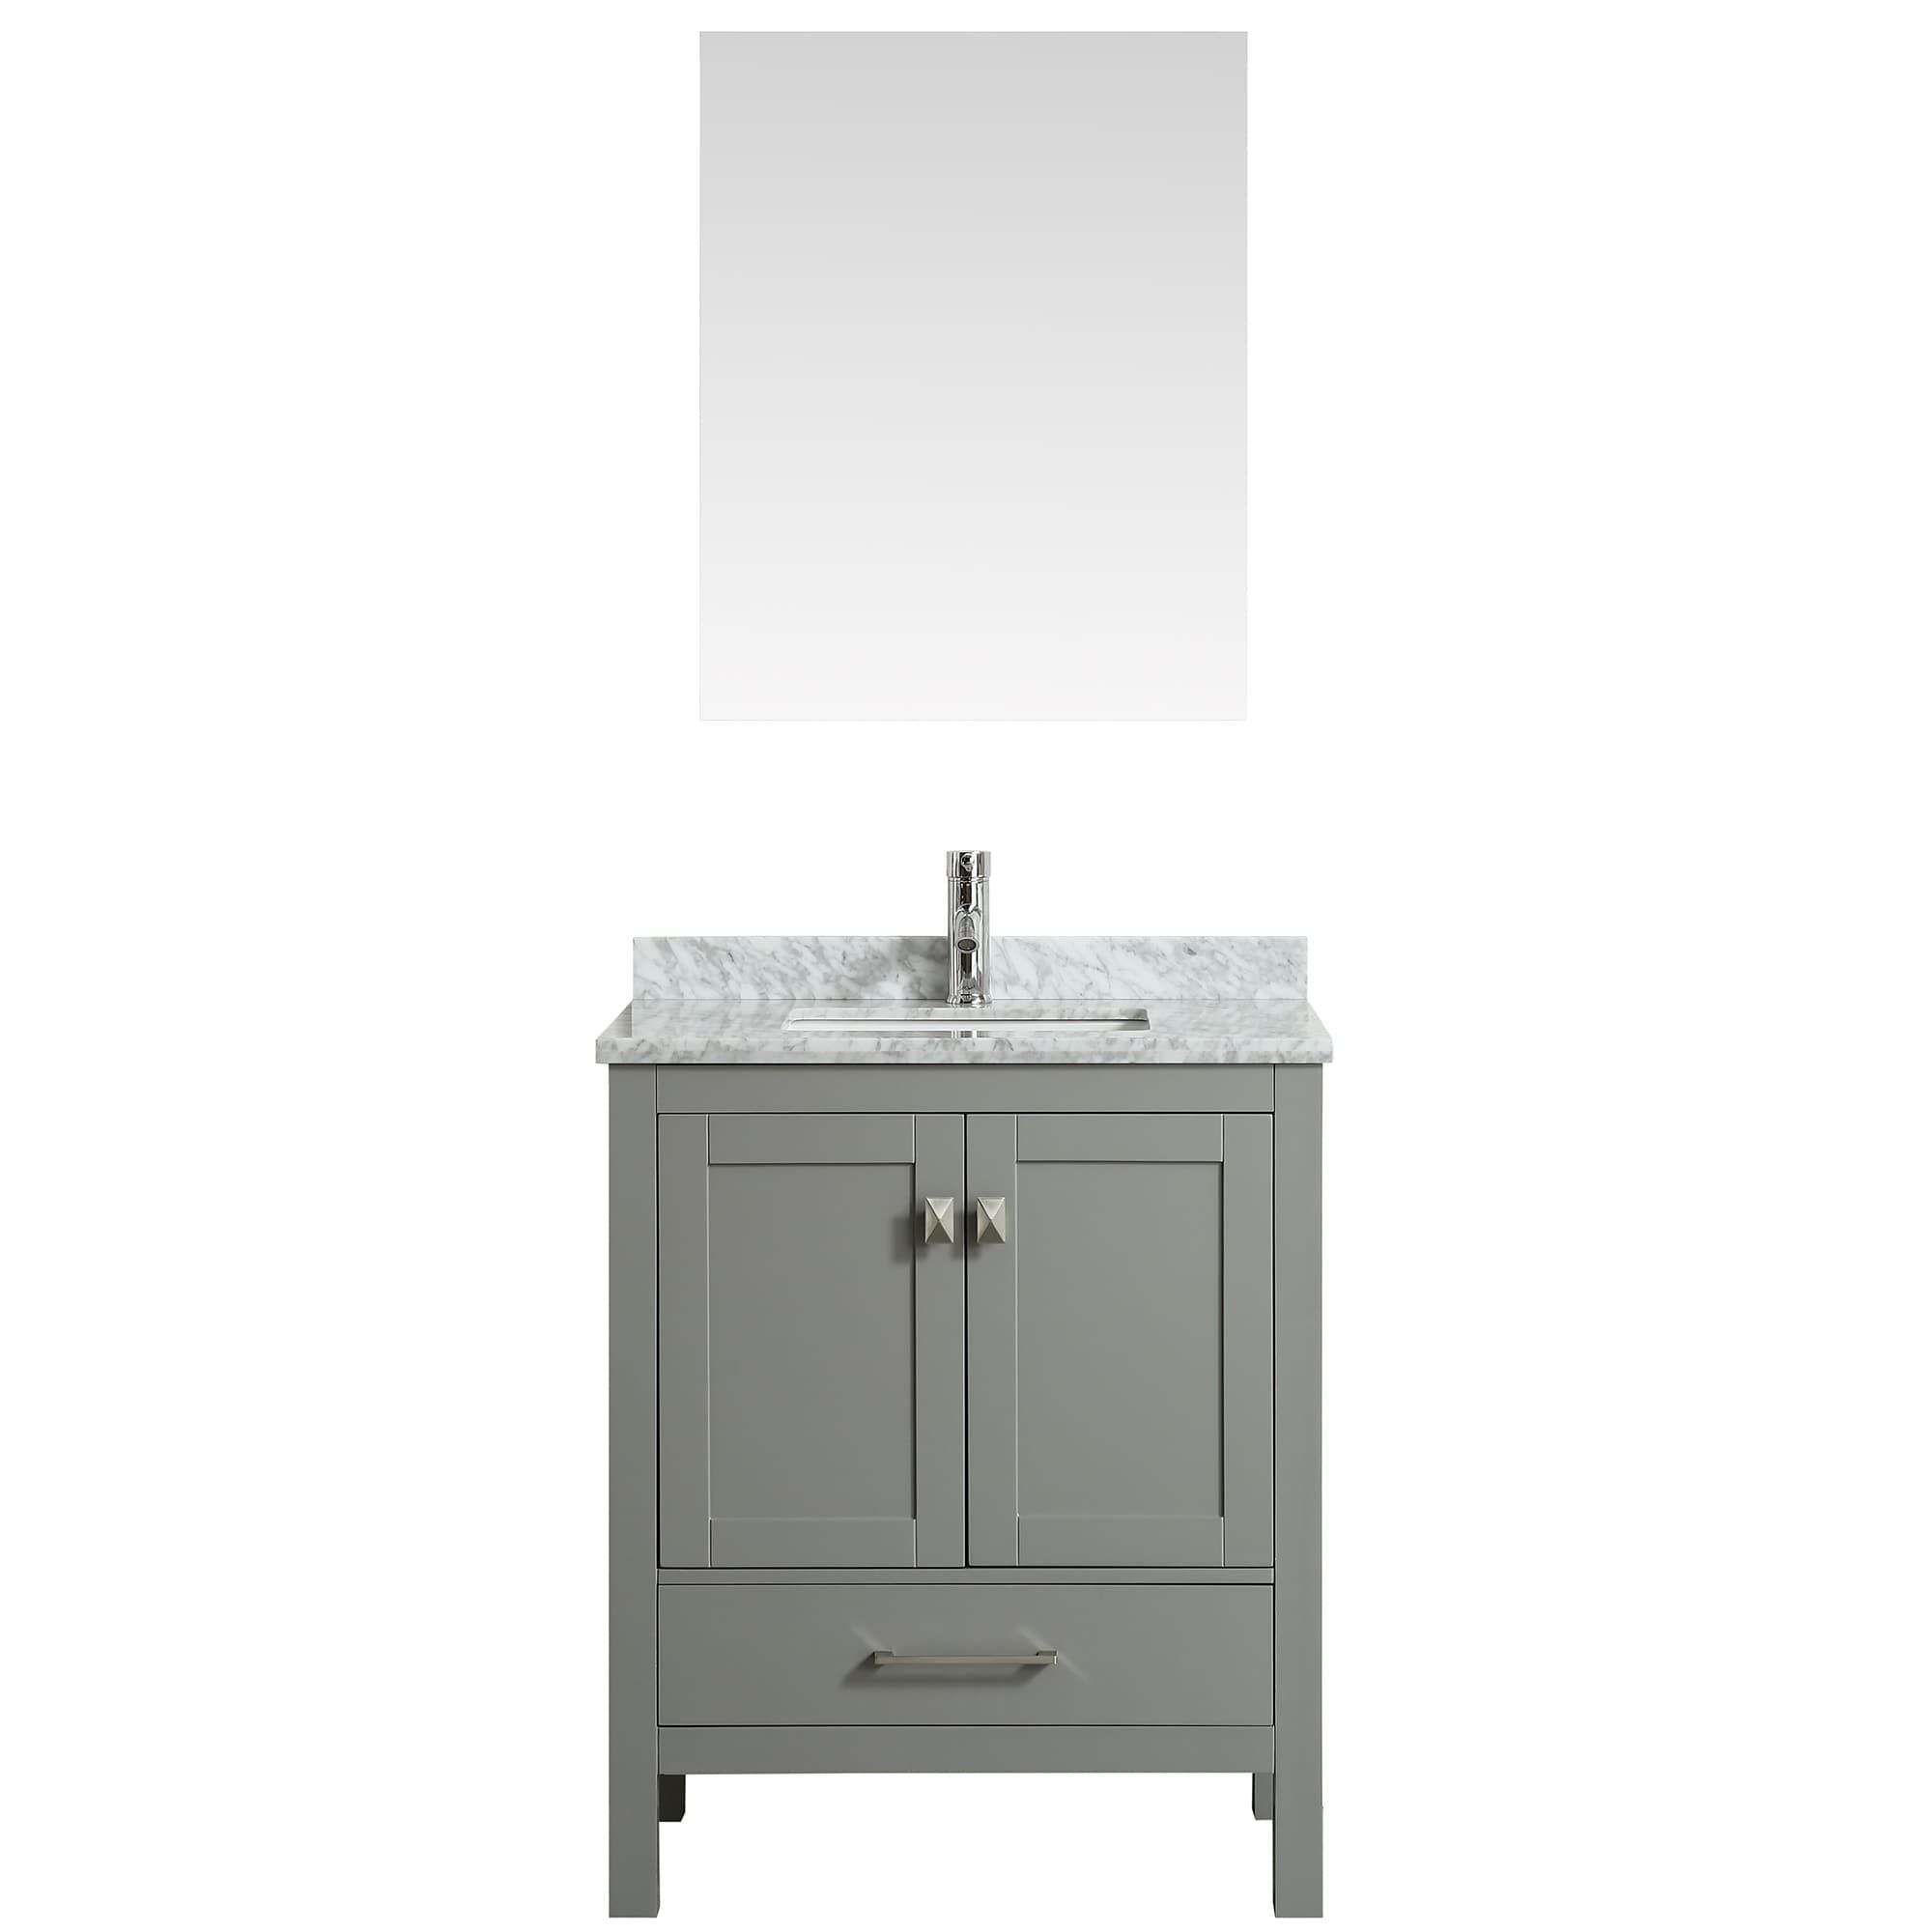 pictures wayfair june photos vanity inches design inspirational and best white top bathroom with inch vanities com barnwood of bathrooms htsrec